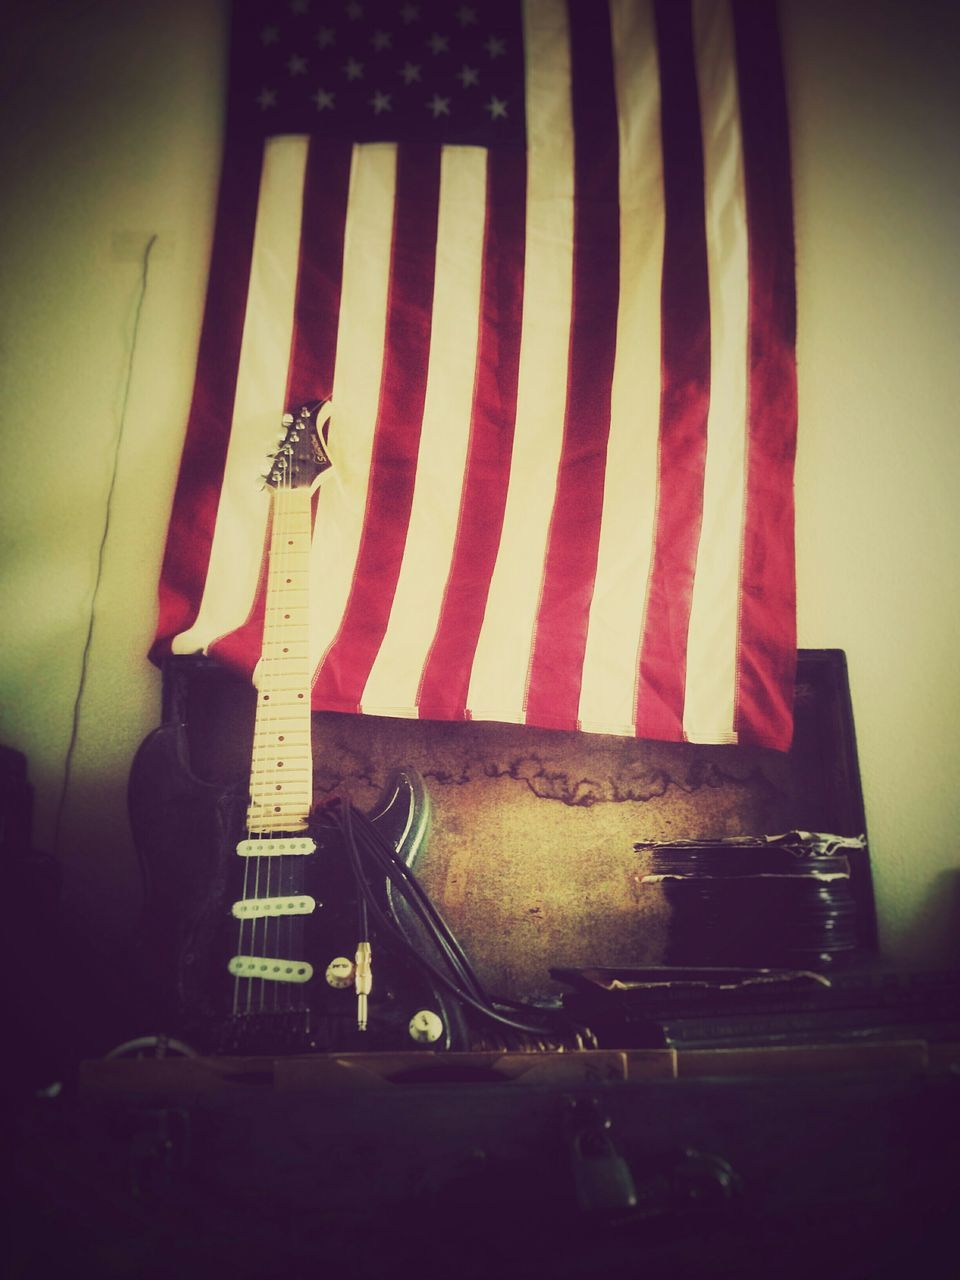 musical instrument, music, indoors, guitar, arts culture and entertainment, no people, electric guitar, close-up, night